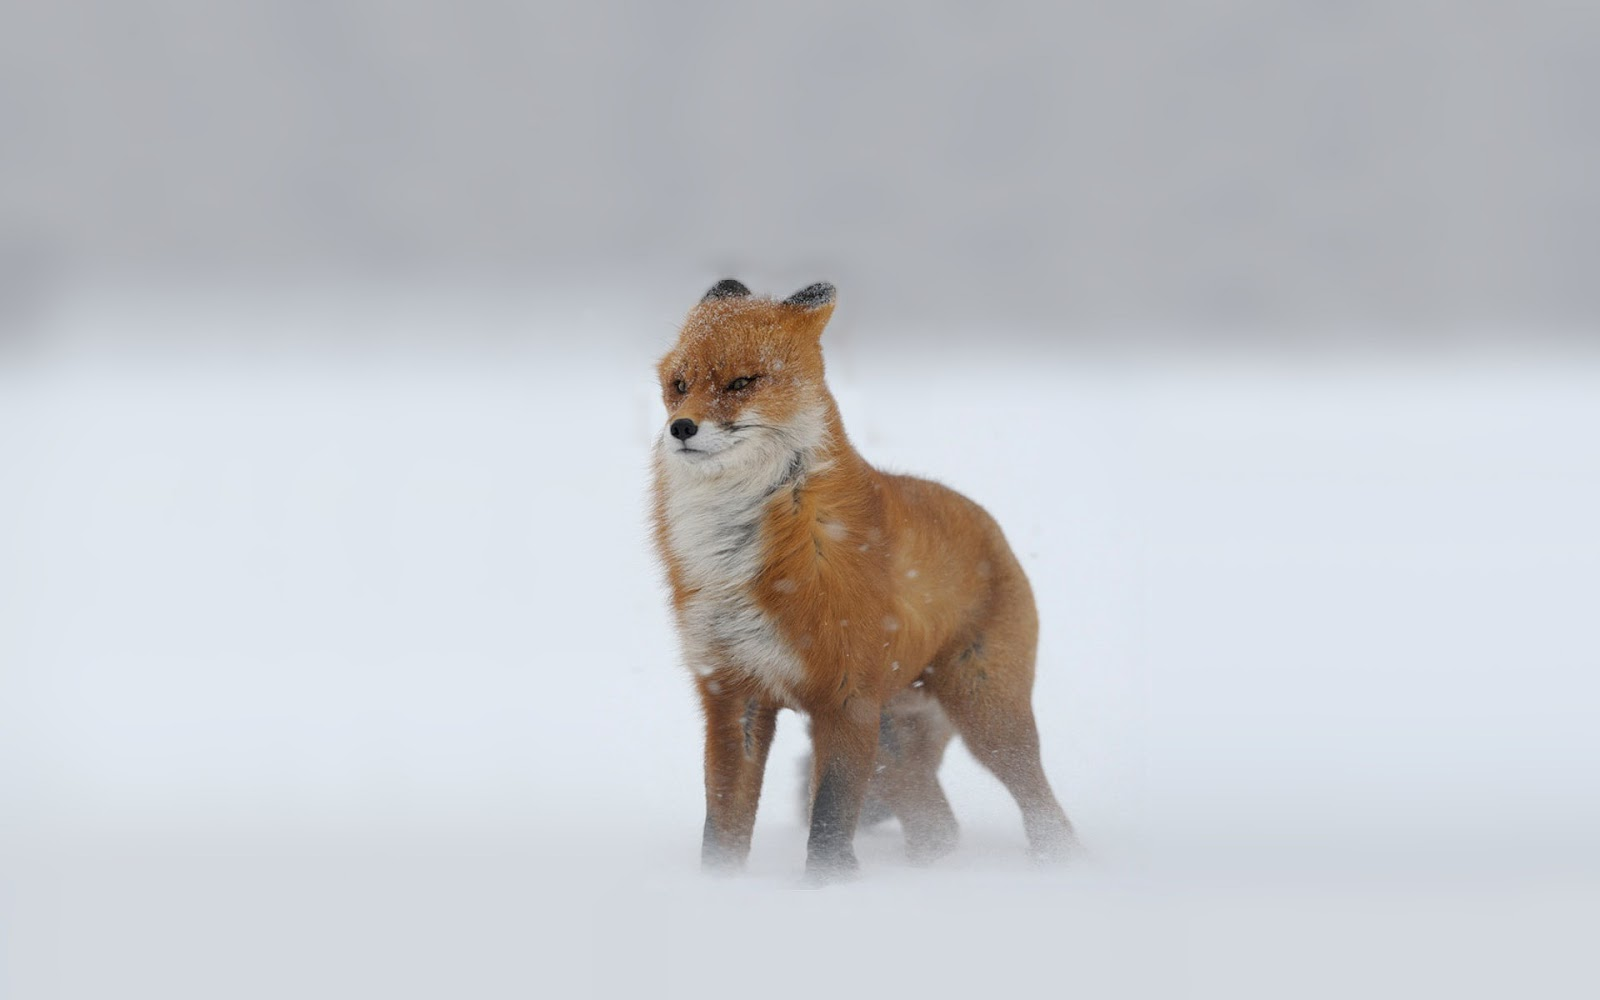 HD anmimal wallpaper of a red fox in a snowstorm HD foxes wallpapers 1600x1000